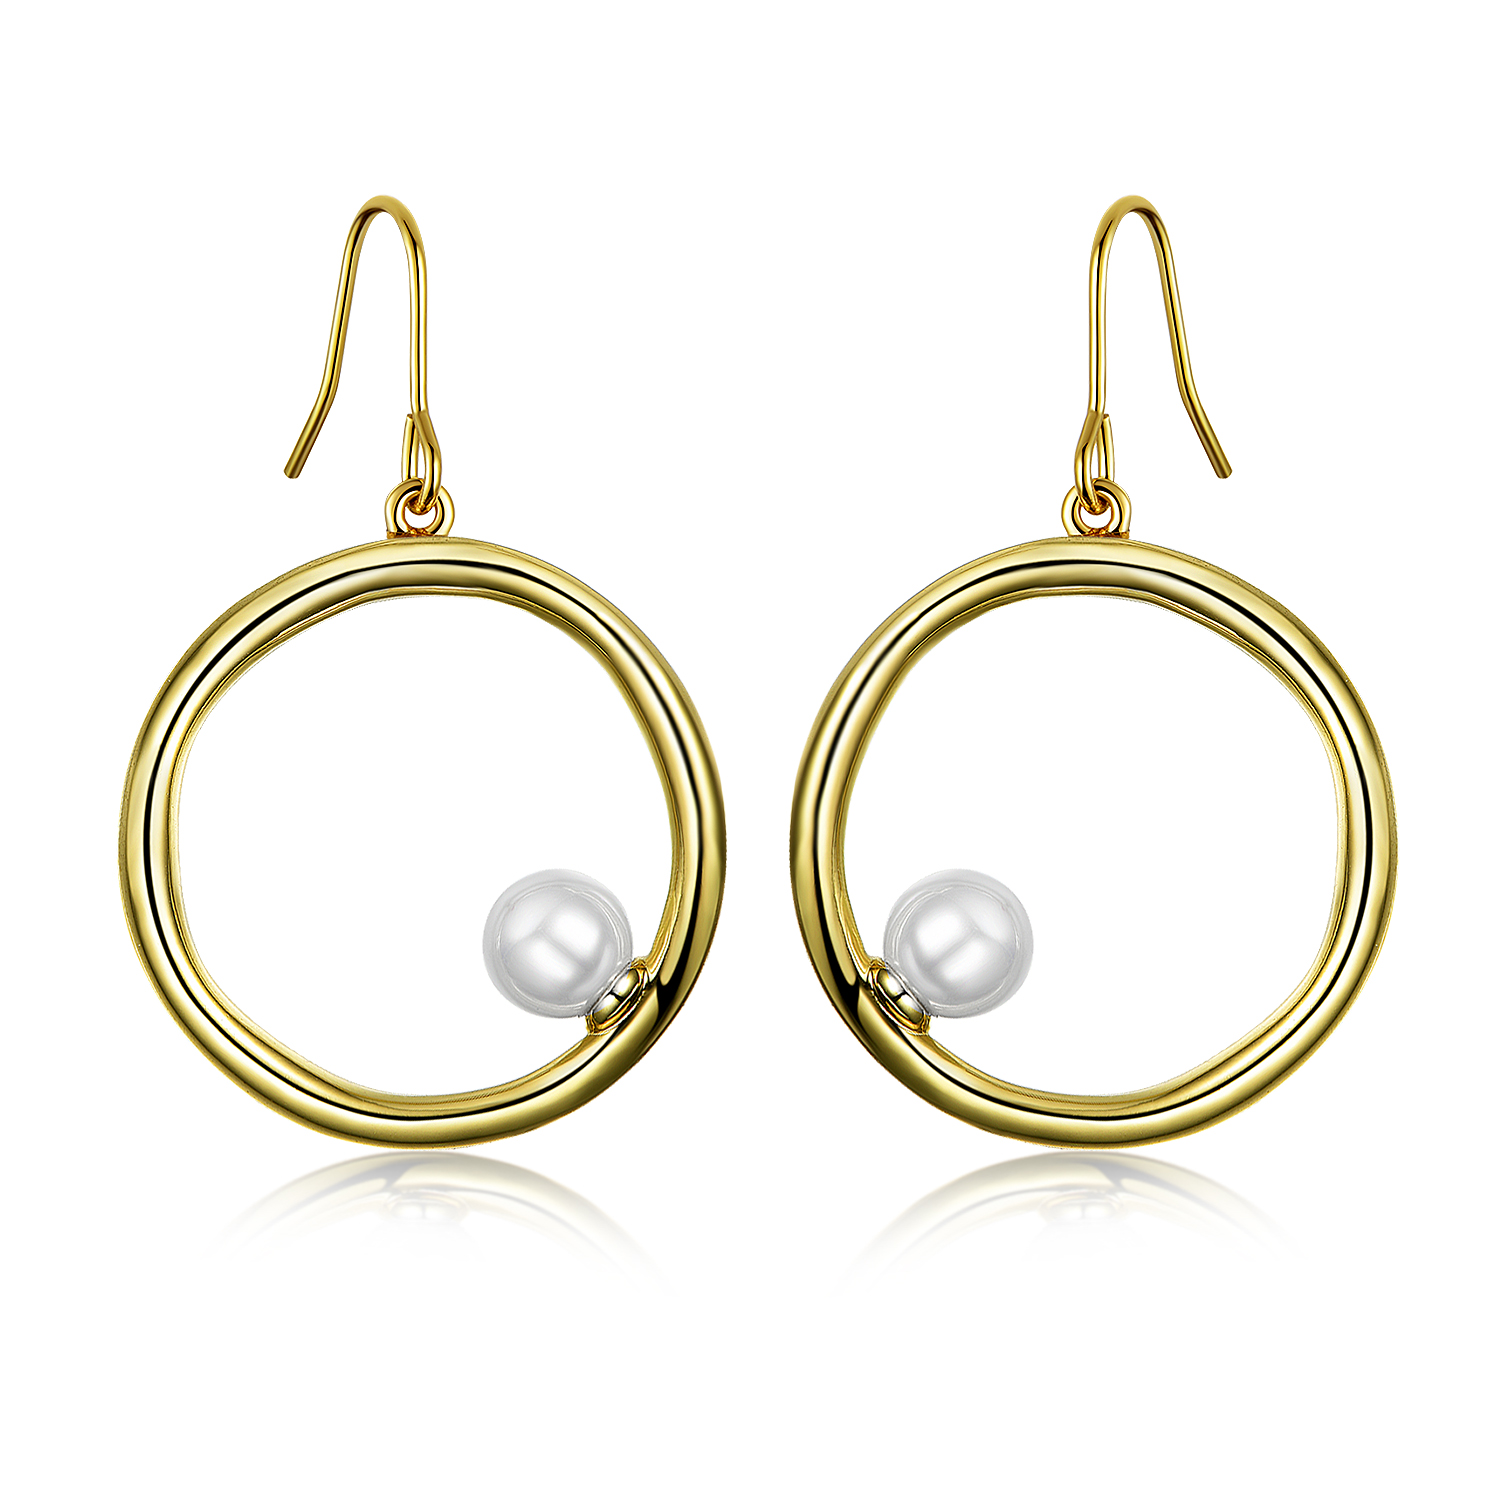 ST2702 Fresh/Shell Pearl Circel  Earring/Pendant/Ring Jewelry Set in 14K Gold from China trustable Jewelry wholesaler